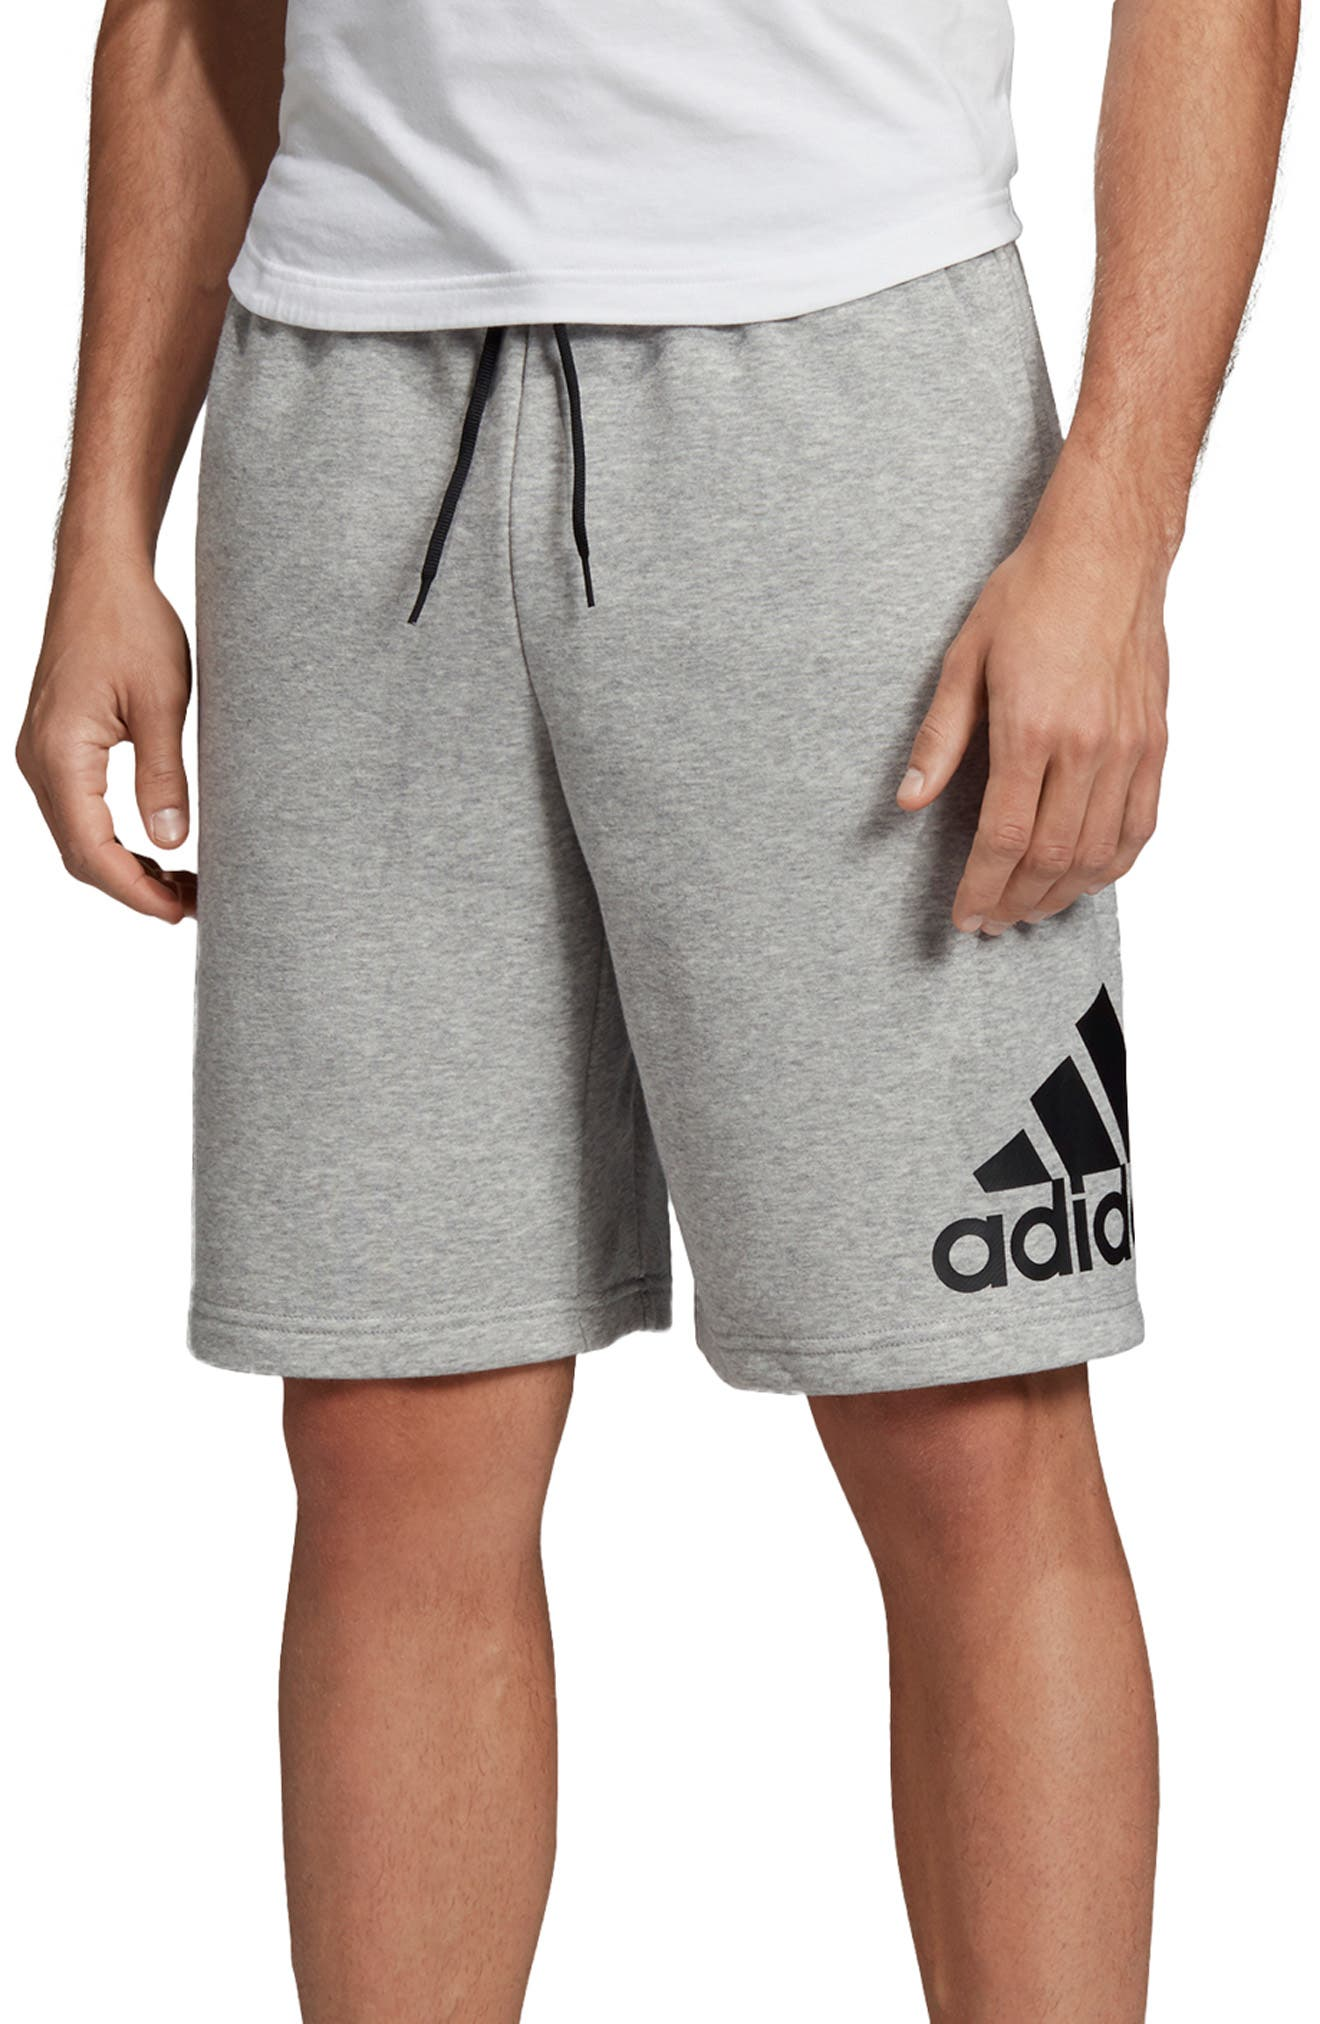 Adidas Shorts Badge of Sport French Terry Shorts